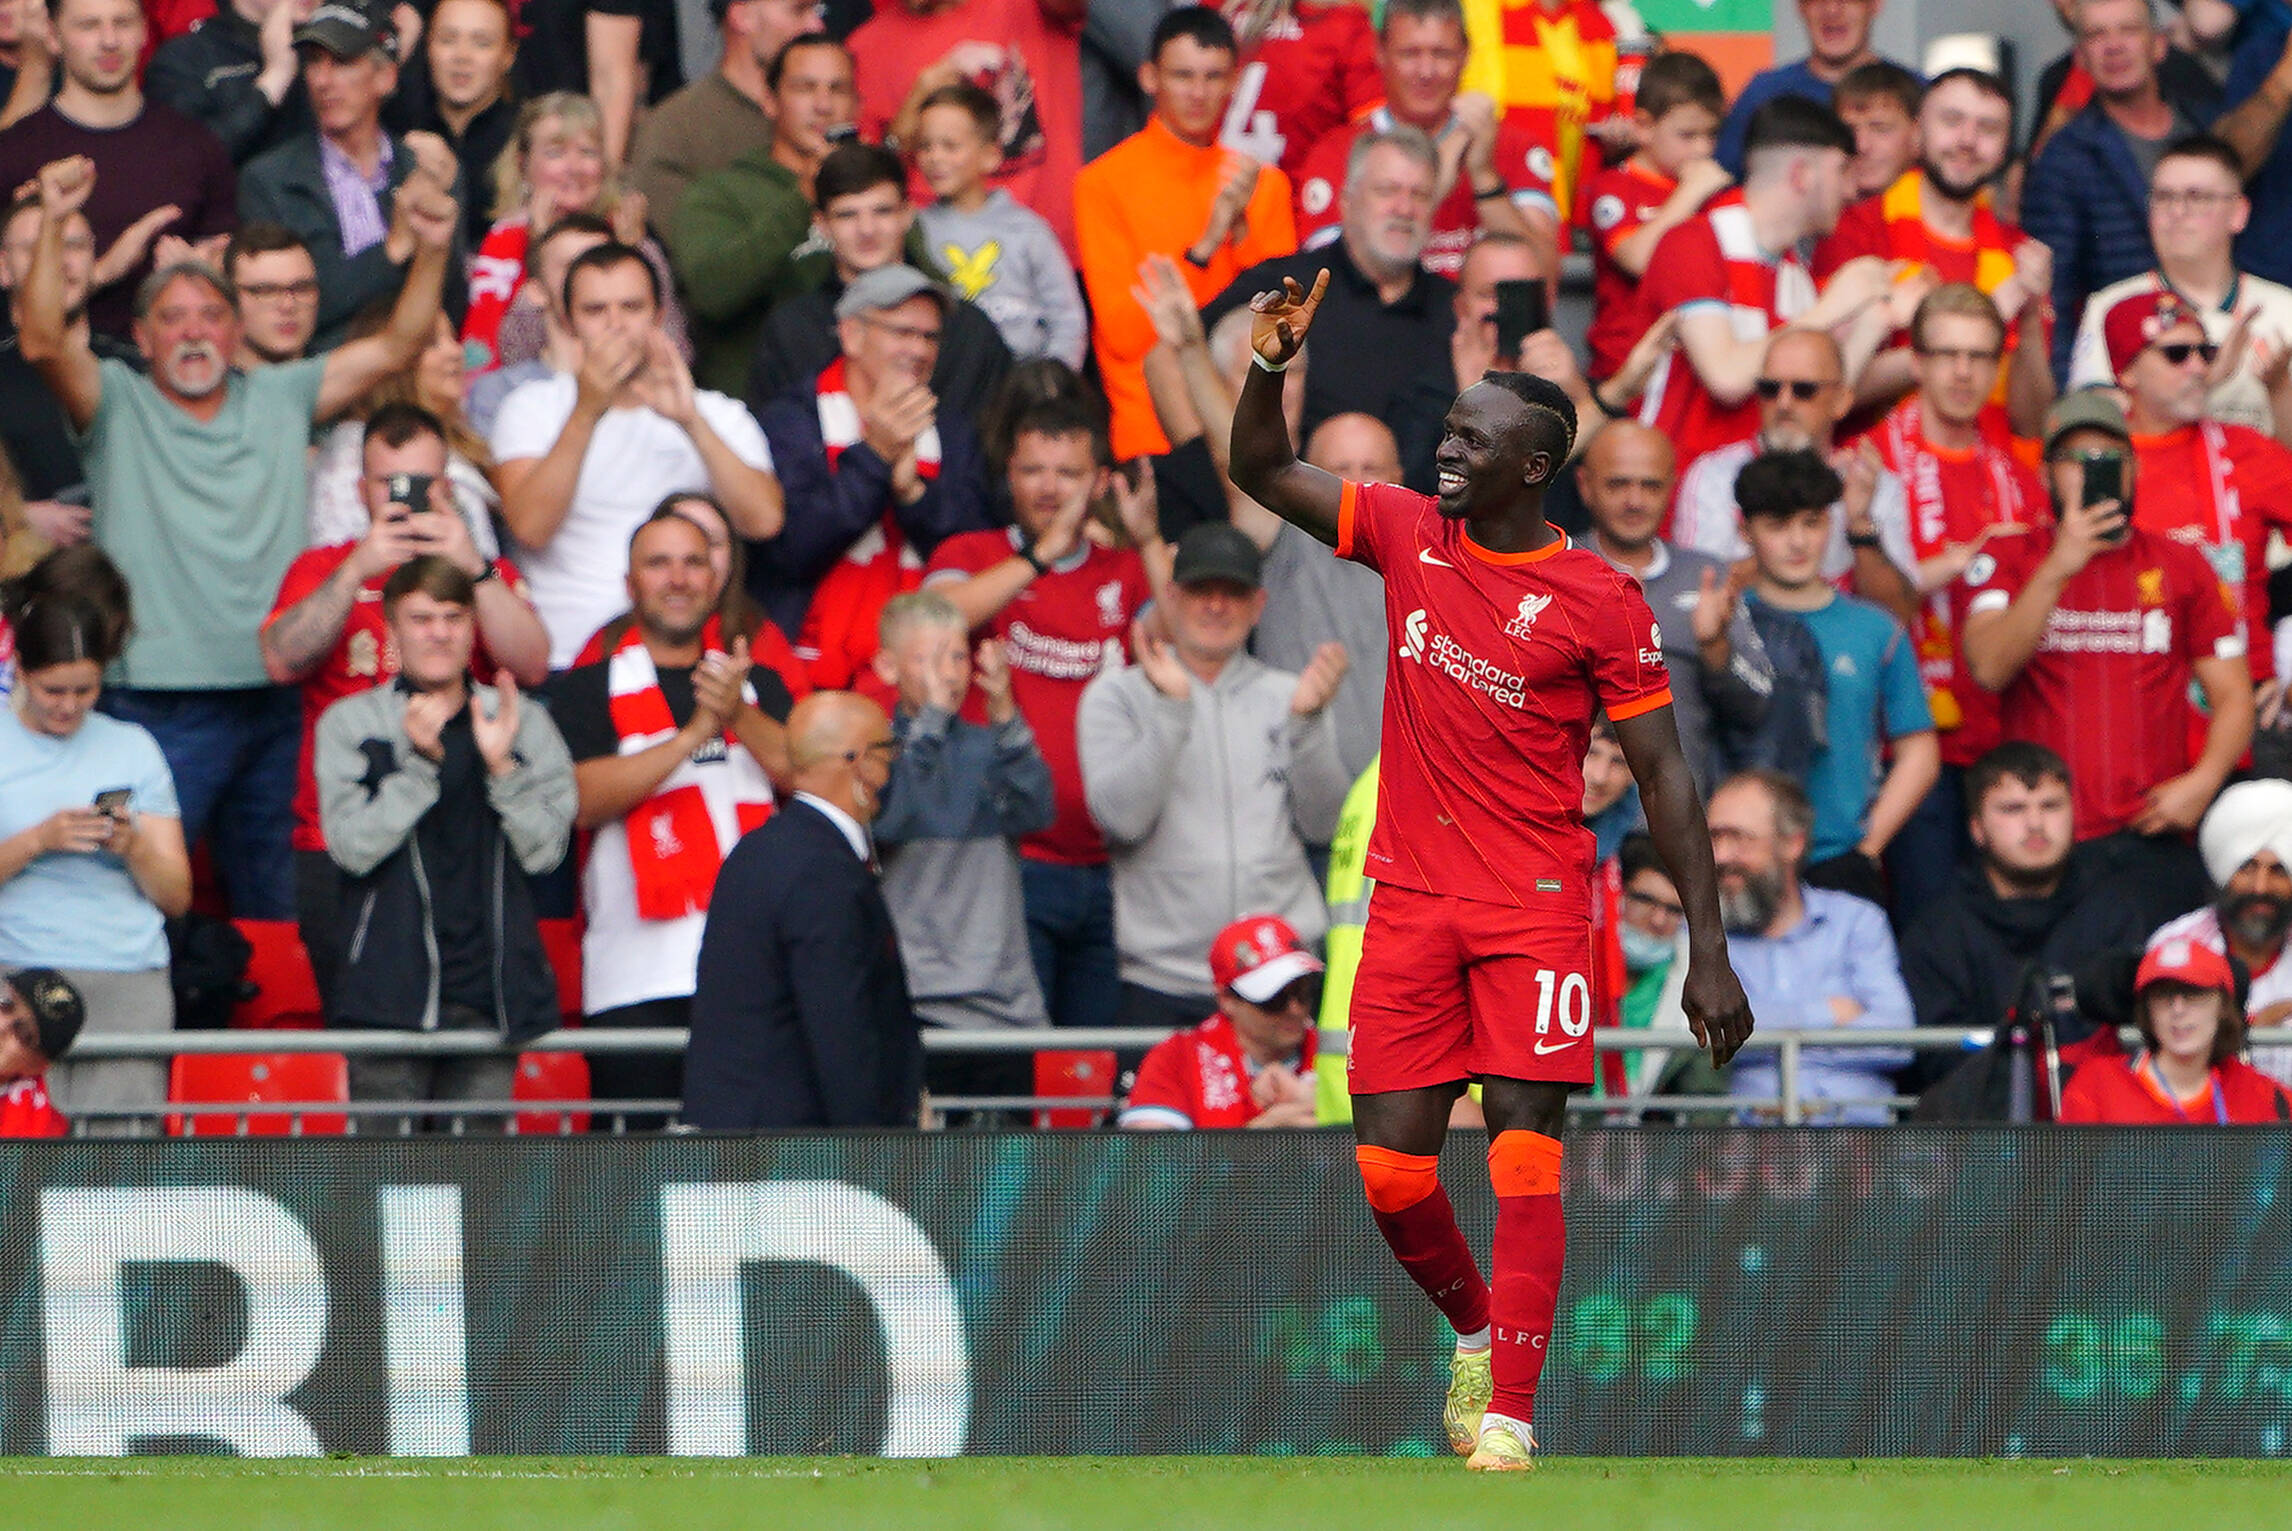 Watch Mane score 100th Liverpool goal against Crystal Palace